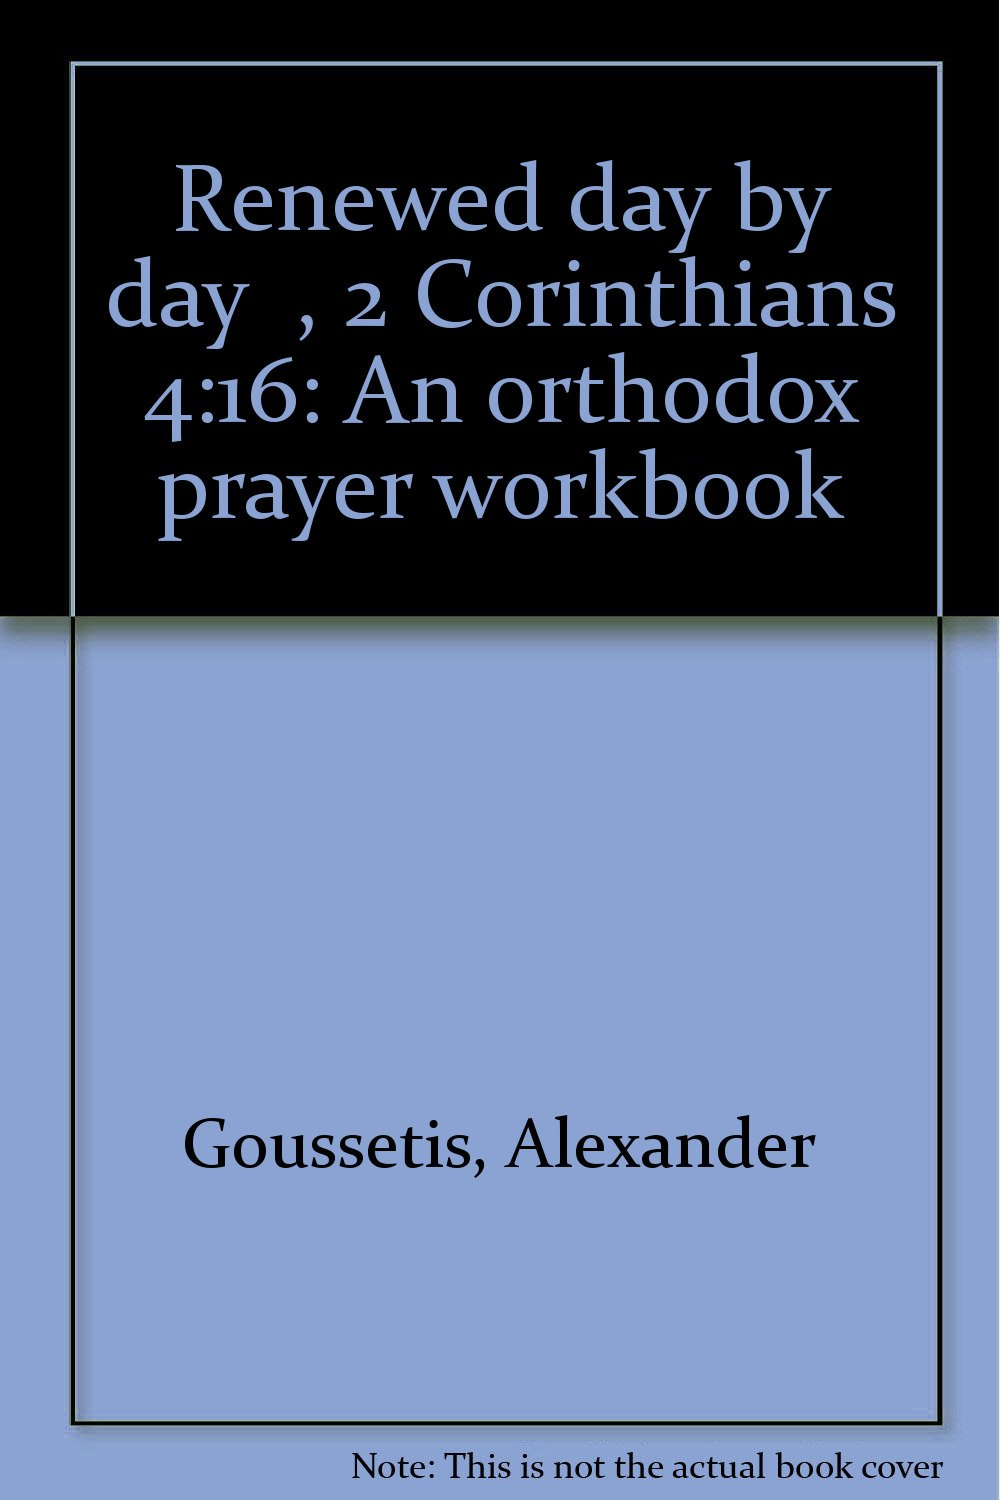 Workbooks prayer workbook : Renewed Day by Day, 2 Corinthians 4:16: An Orthodox Prayer ...